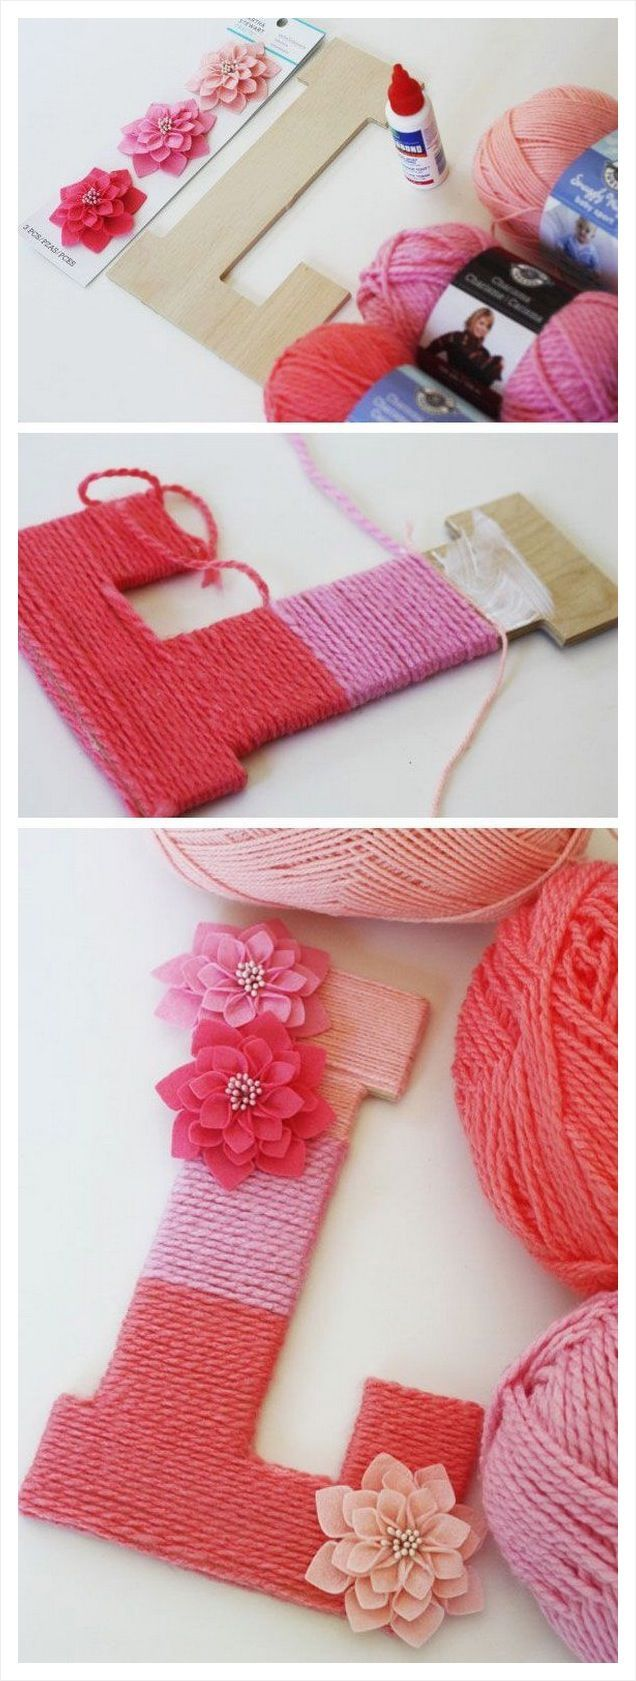 Crafts How To Make Yarn Wrapped Letters Video The WHOot